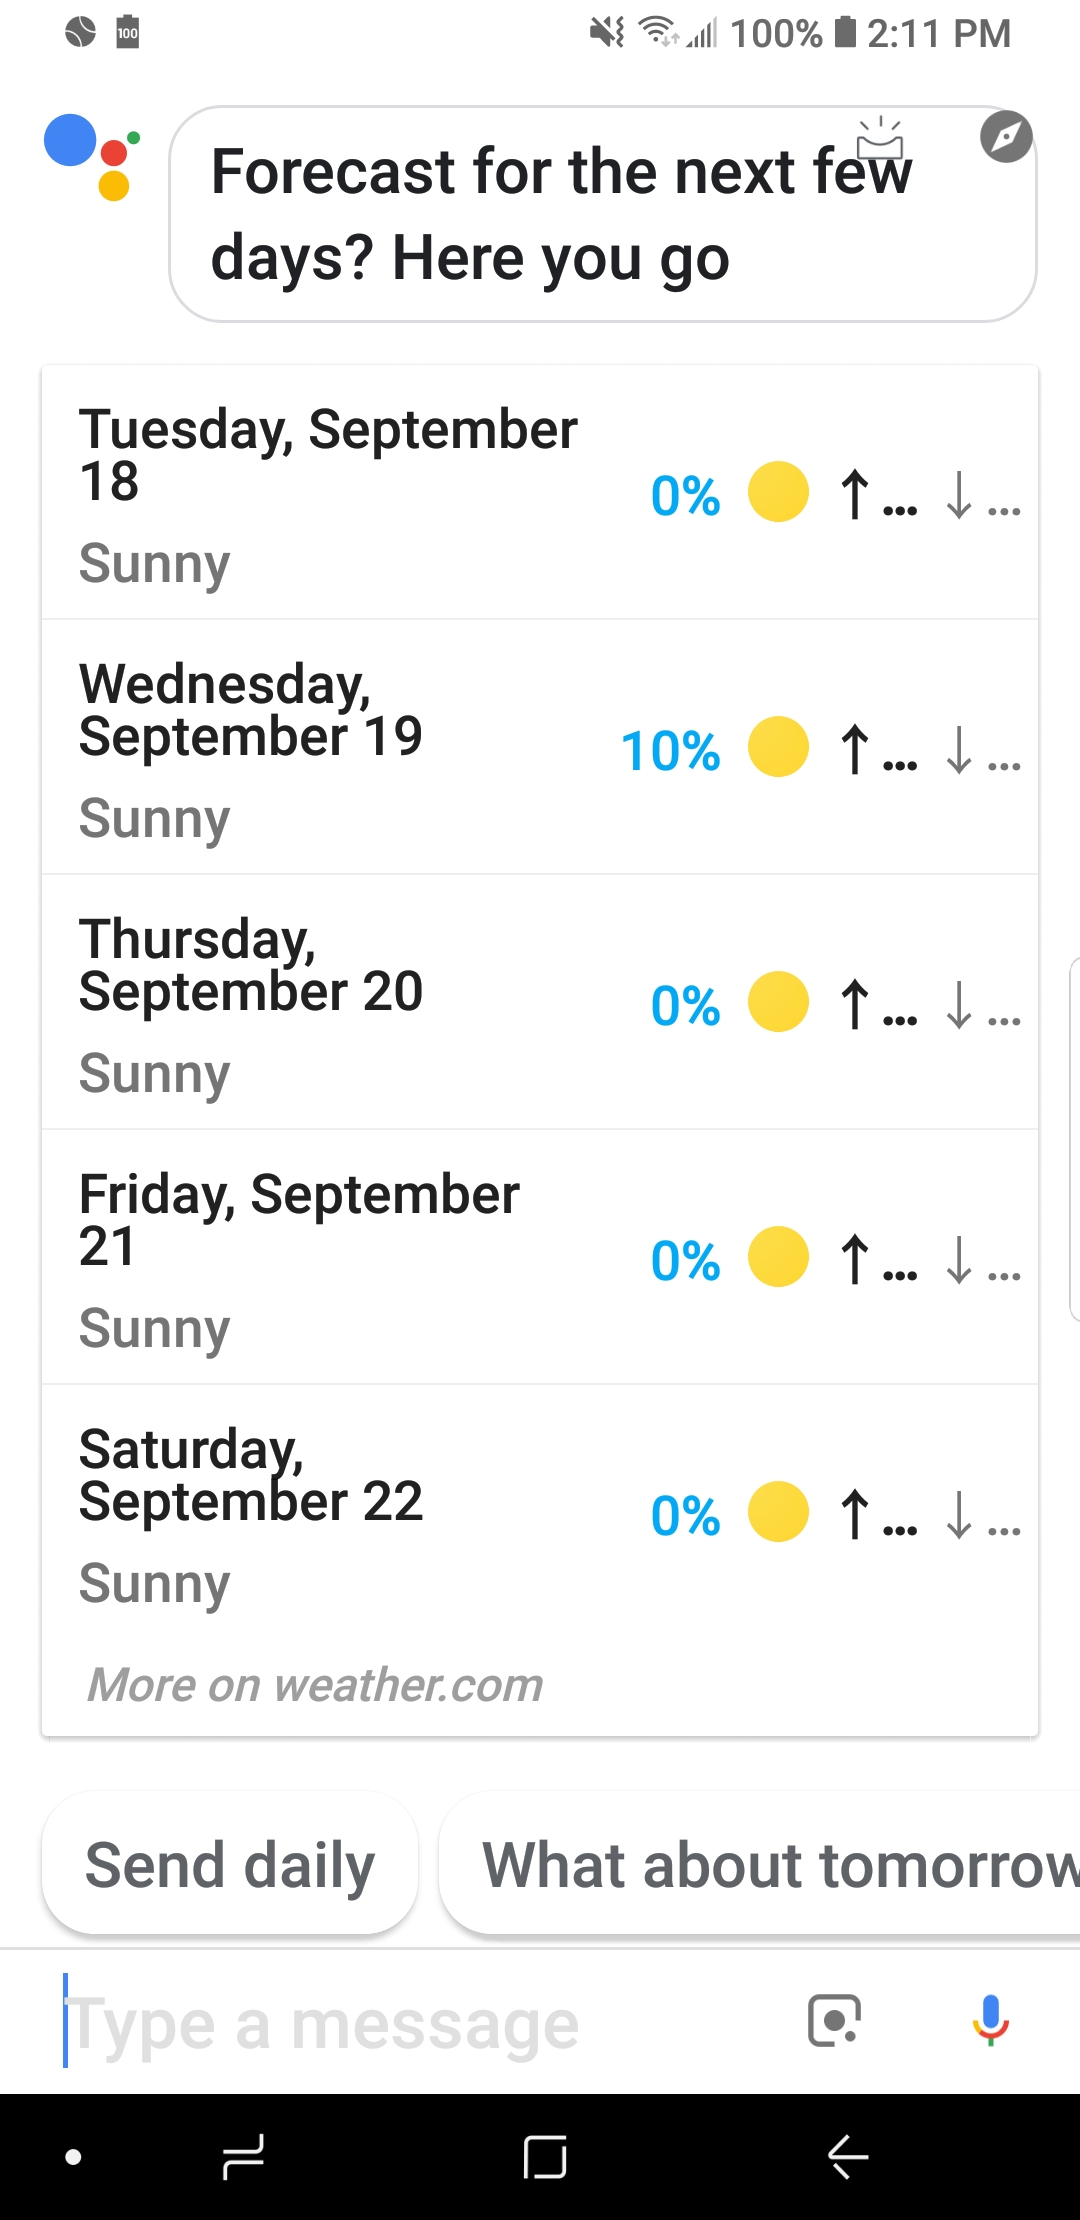 Why is weather temperature not showing up when weekly forecast is